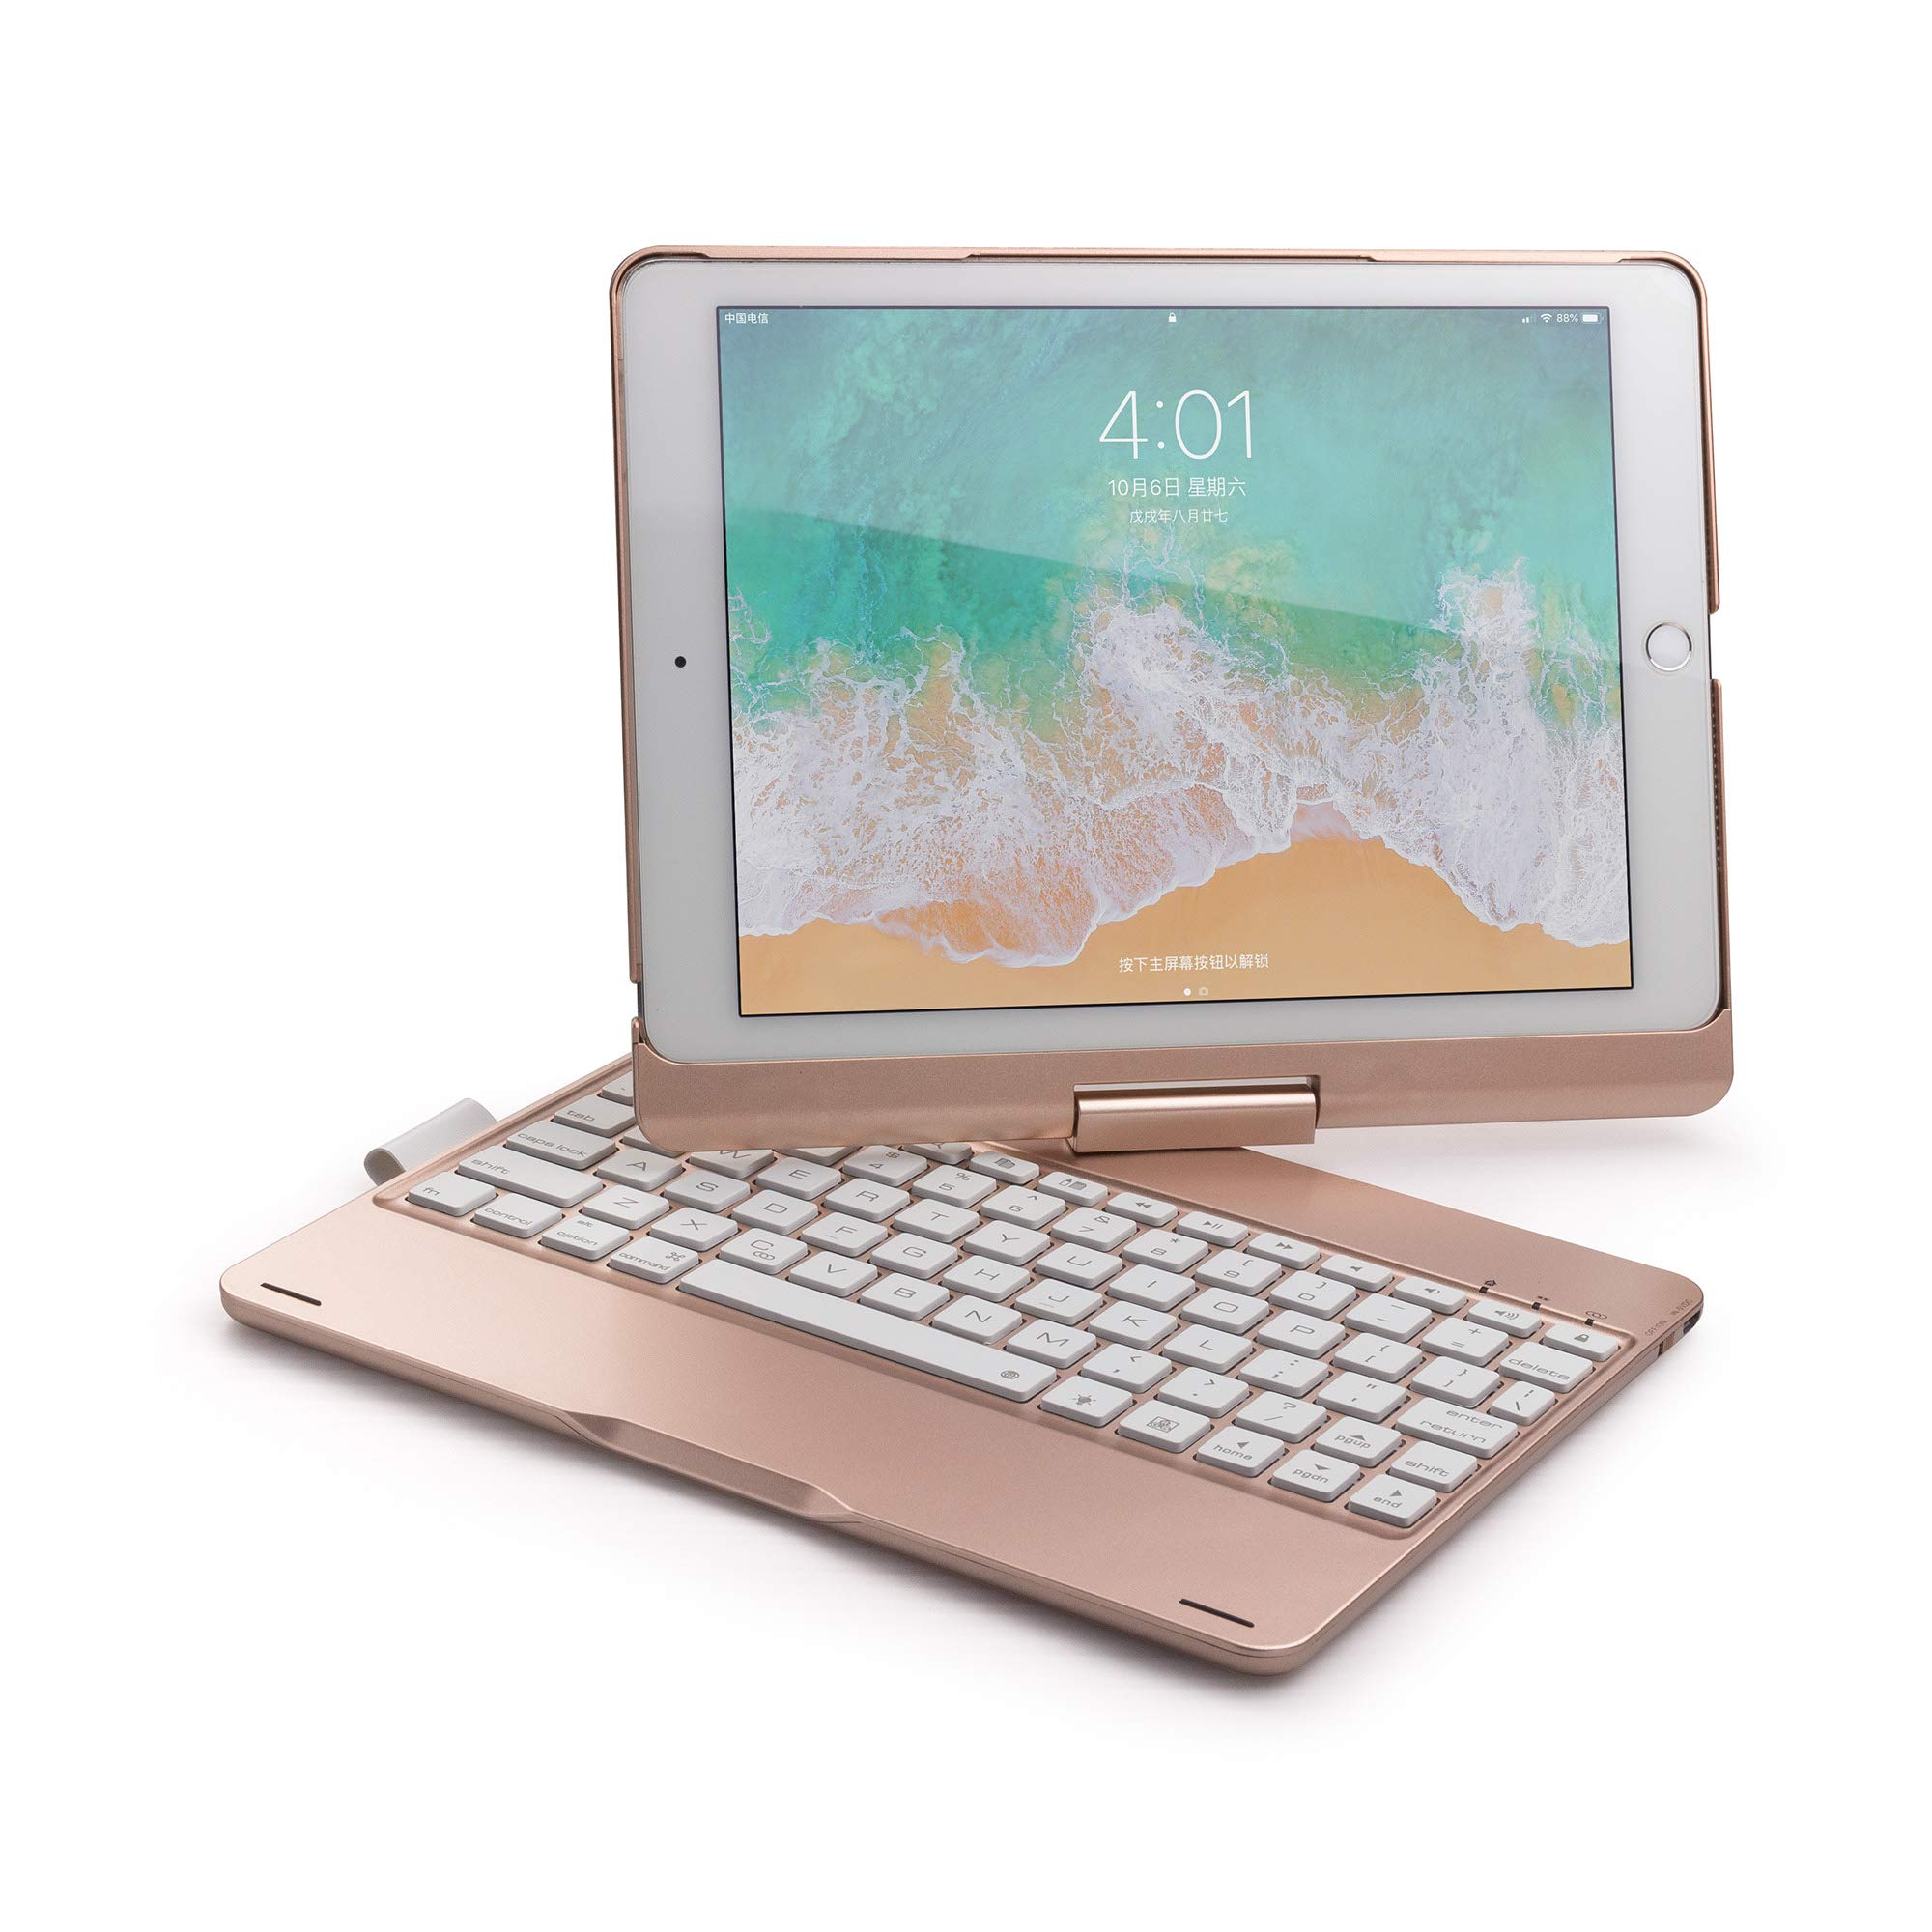 Wireless Keyboard Case for iPad Air 2019 3rd Gen/iPad Pro 10.5'' 2017, Businda Aluminum Shell Smart Folio Case with 7 Colors Back-lit, Auto Sleep/Wake, (A1701/A1709), Rose Gold